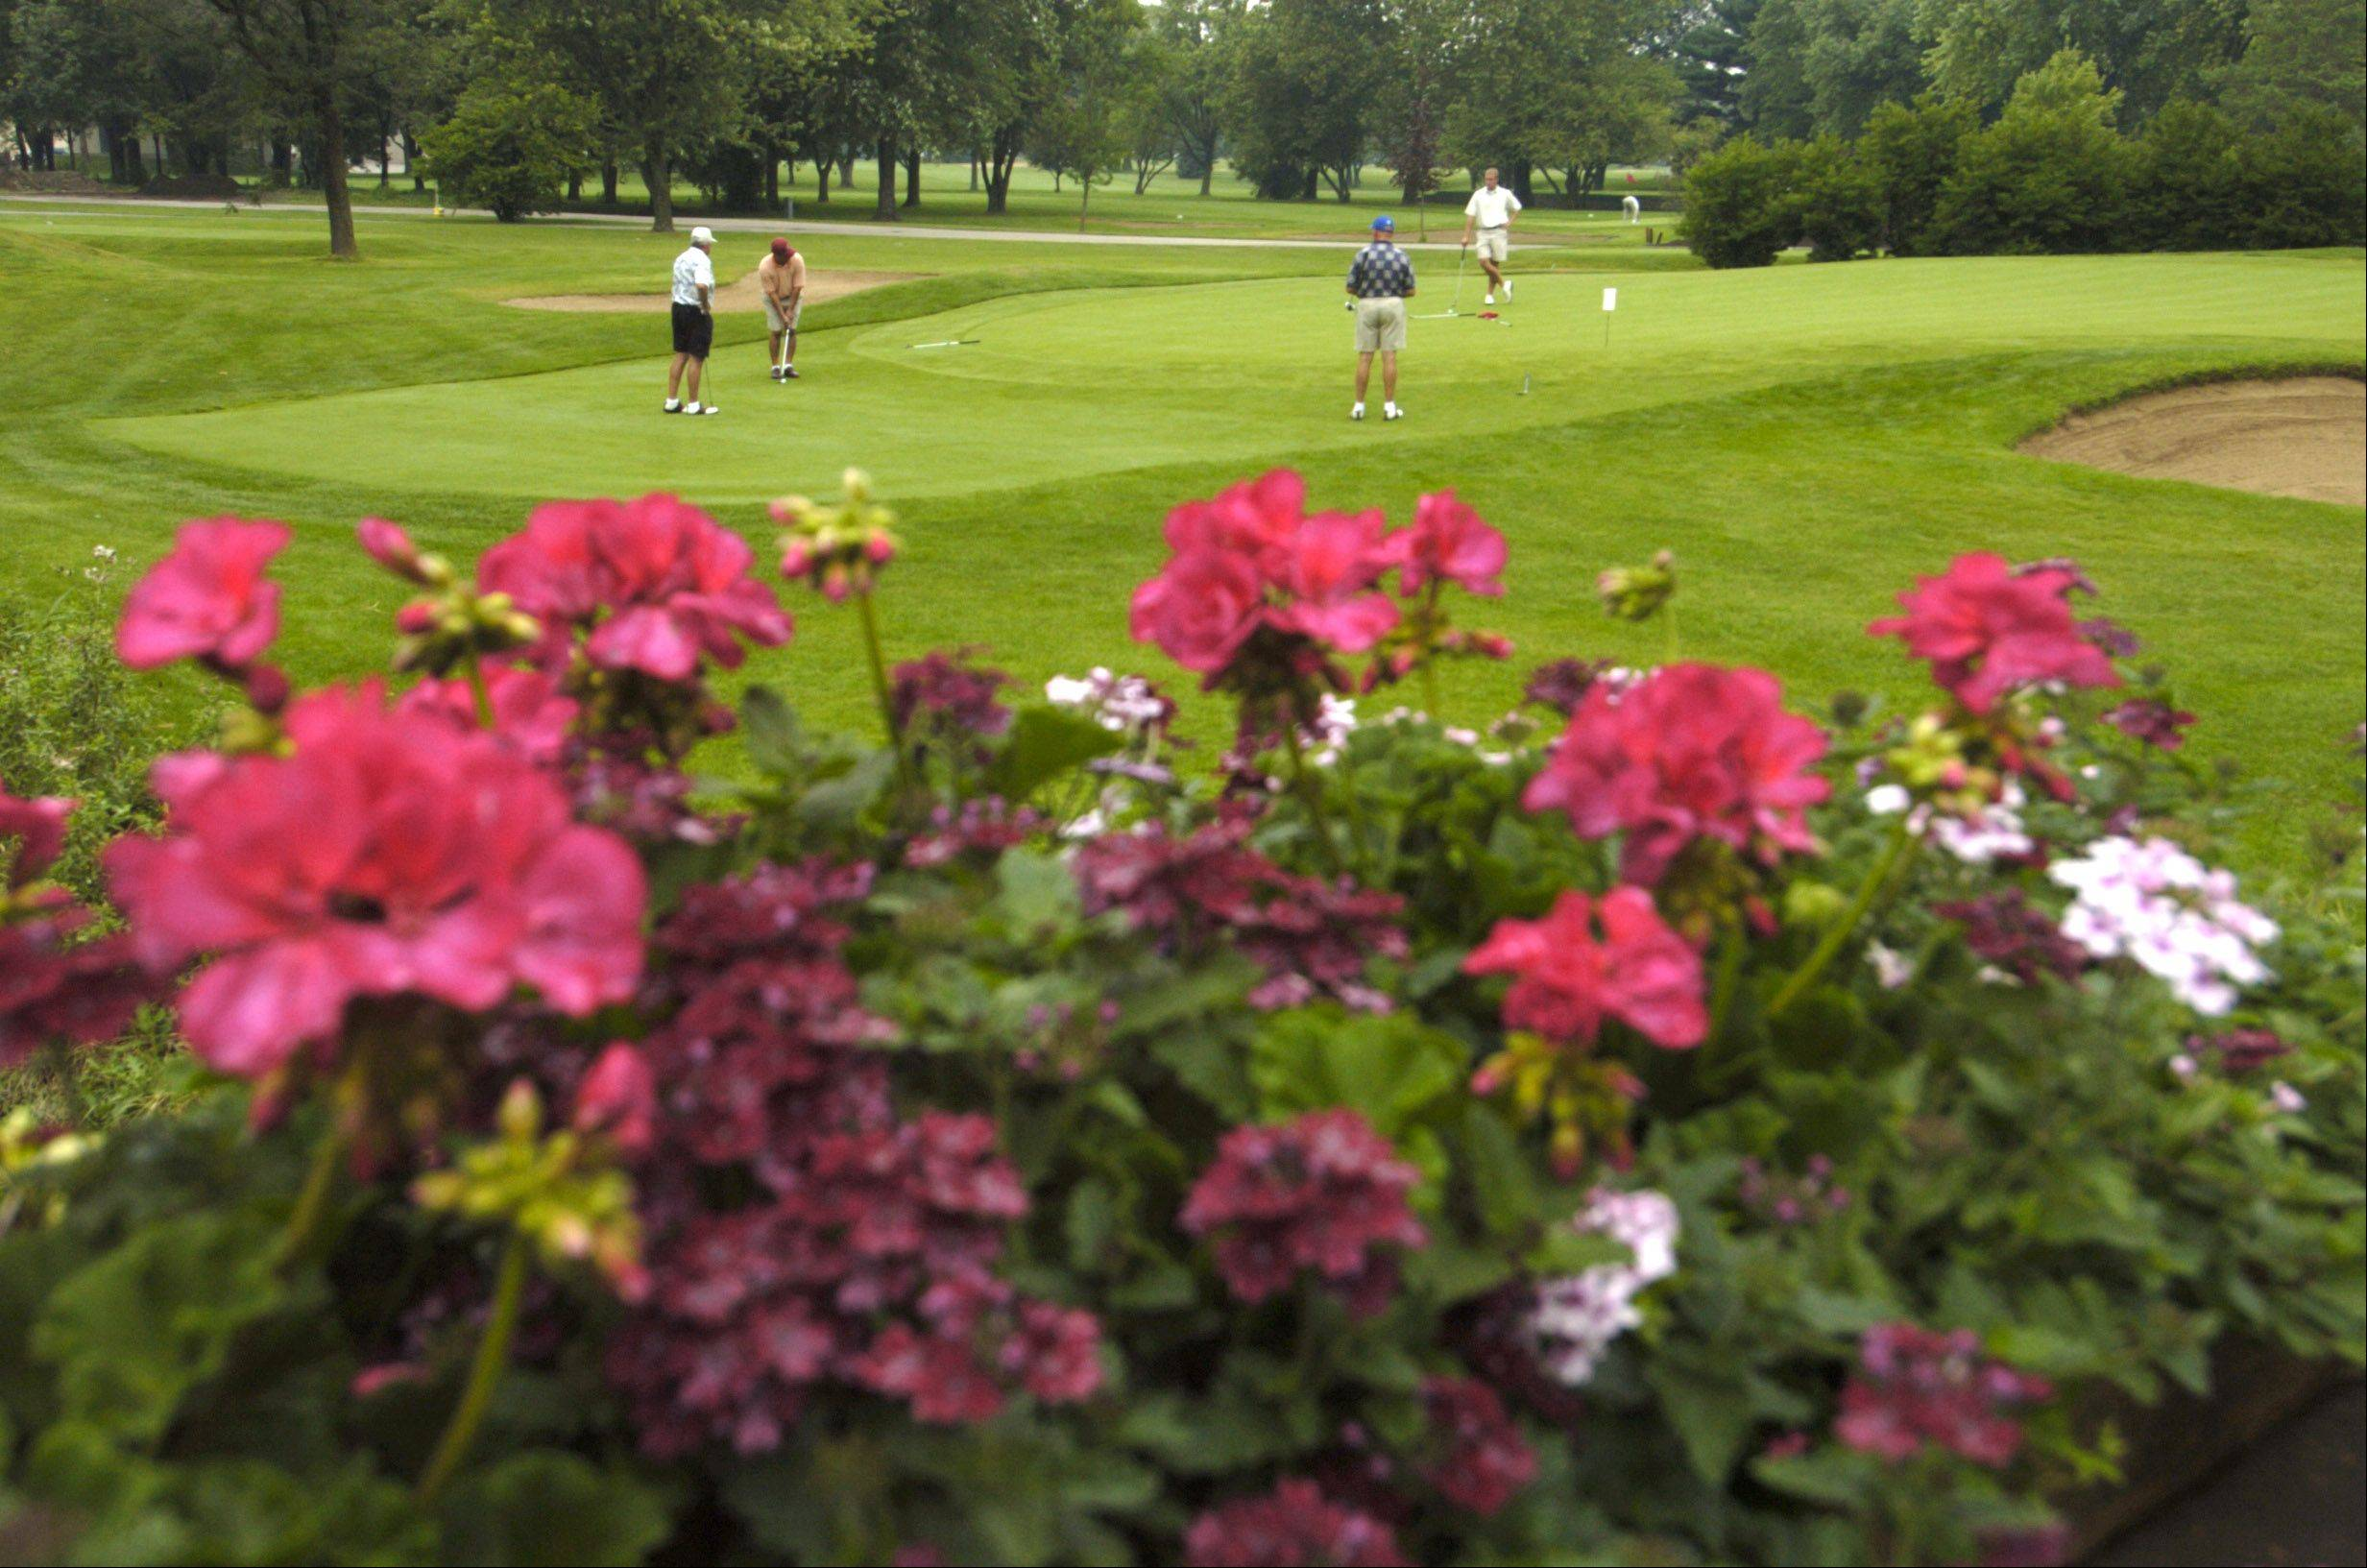 The Mount Prospect Park District is back to the drawing board with a key part of its $6 million plan to renovate the Mount Prospect Golf Club. Village officials Tuesday night failed to approve the district�s request for a zoning variance that would allow it to install a 75-foot-tall net as part of a new driving range.